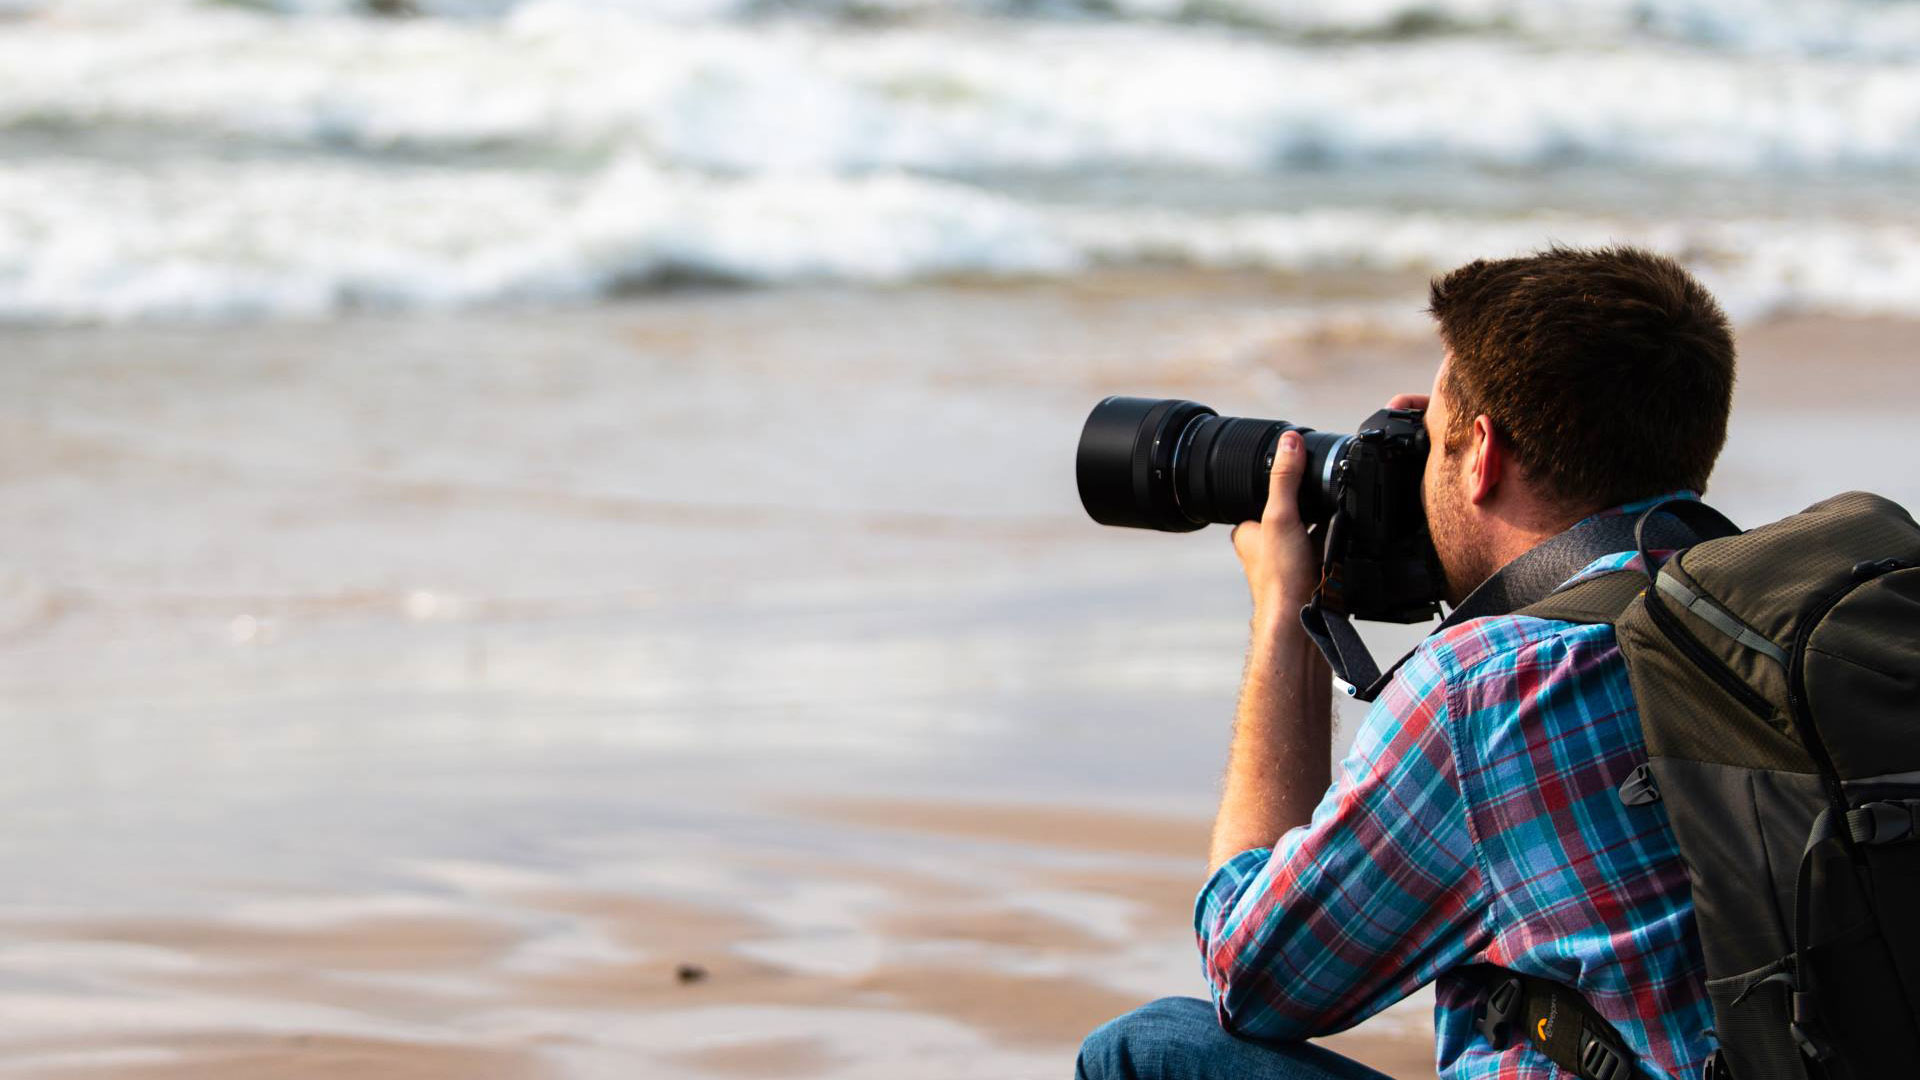 Photography 101: Why won't my camera take the picture?